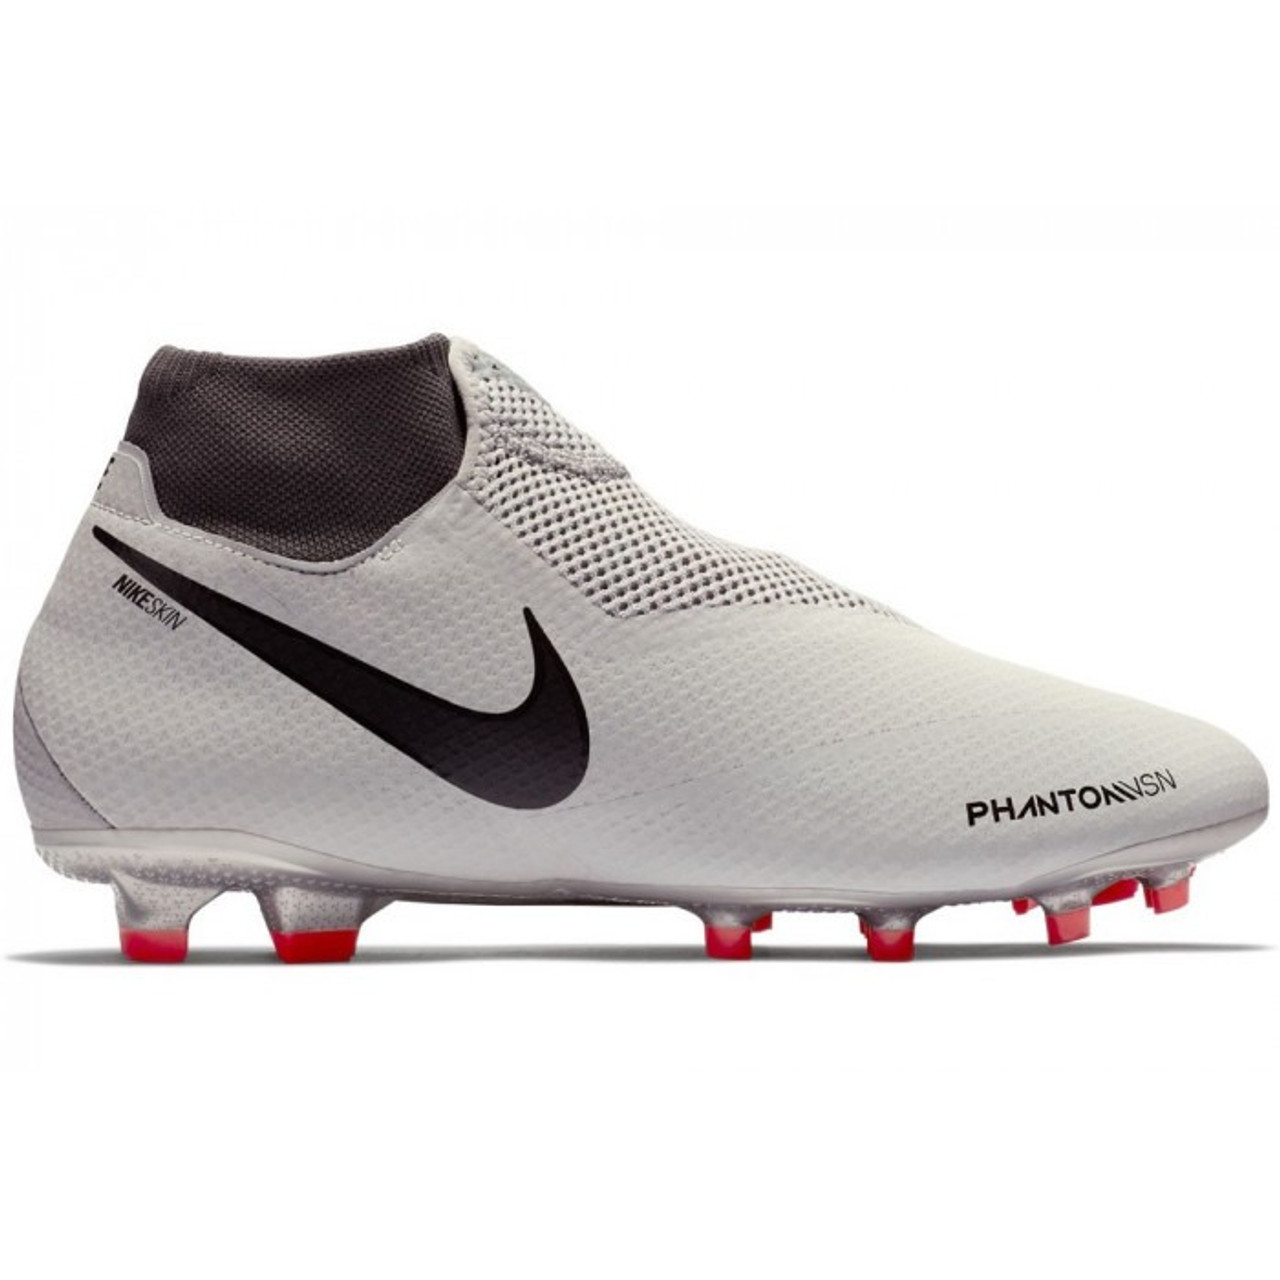 8d8c40fff NIKE PHANTOM VSN ELITE DF FG Pure Platinum - Soccer Plus